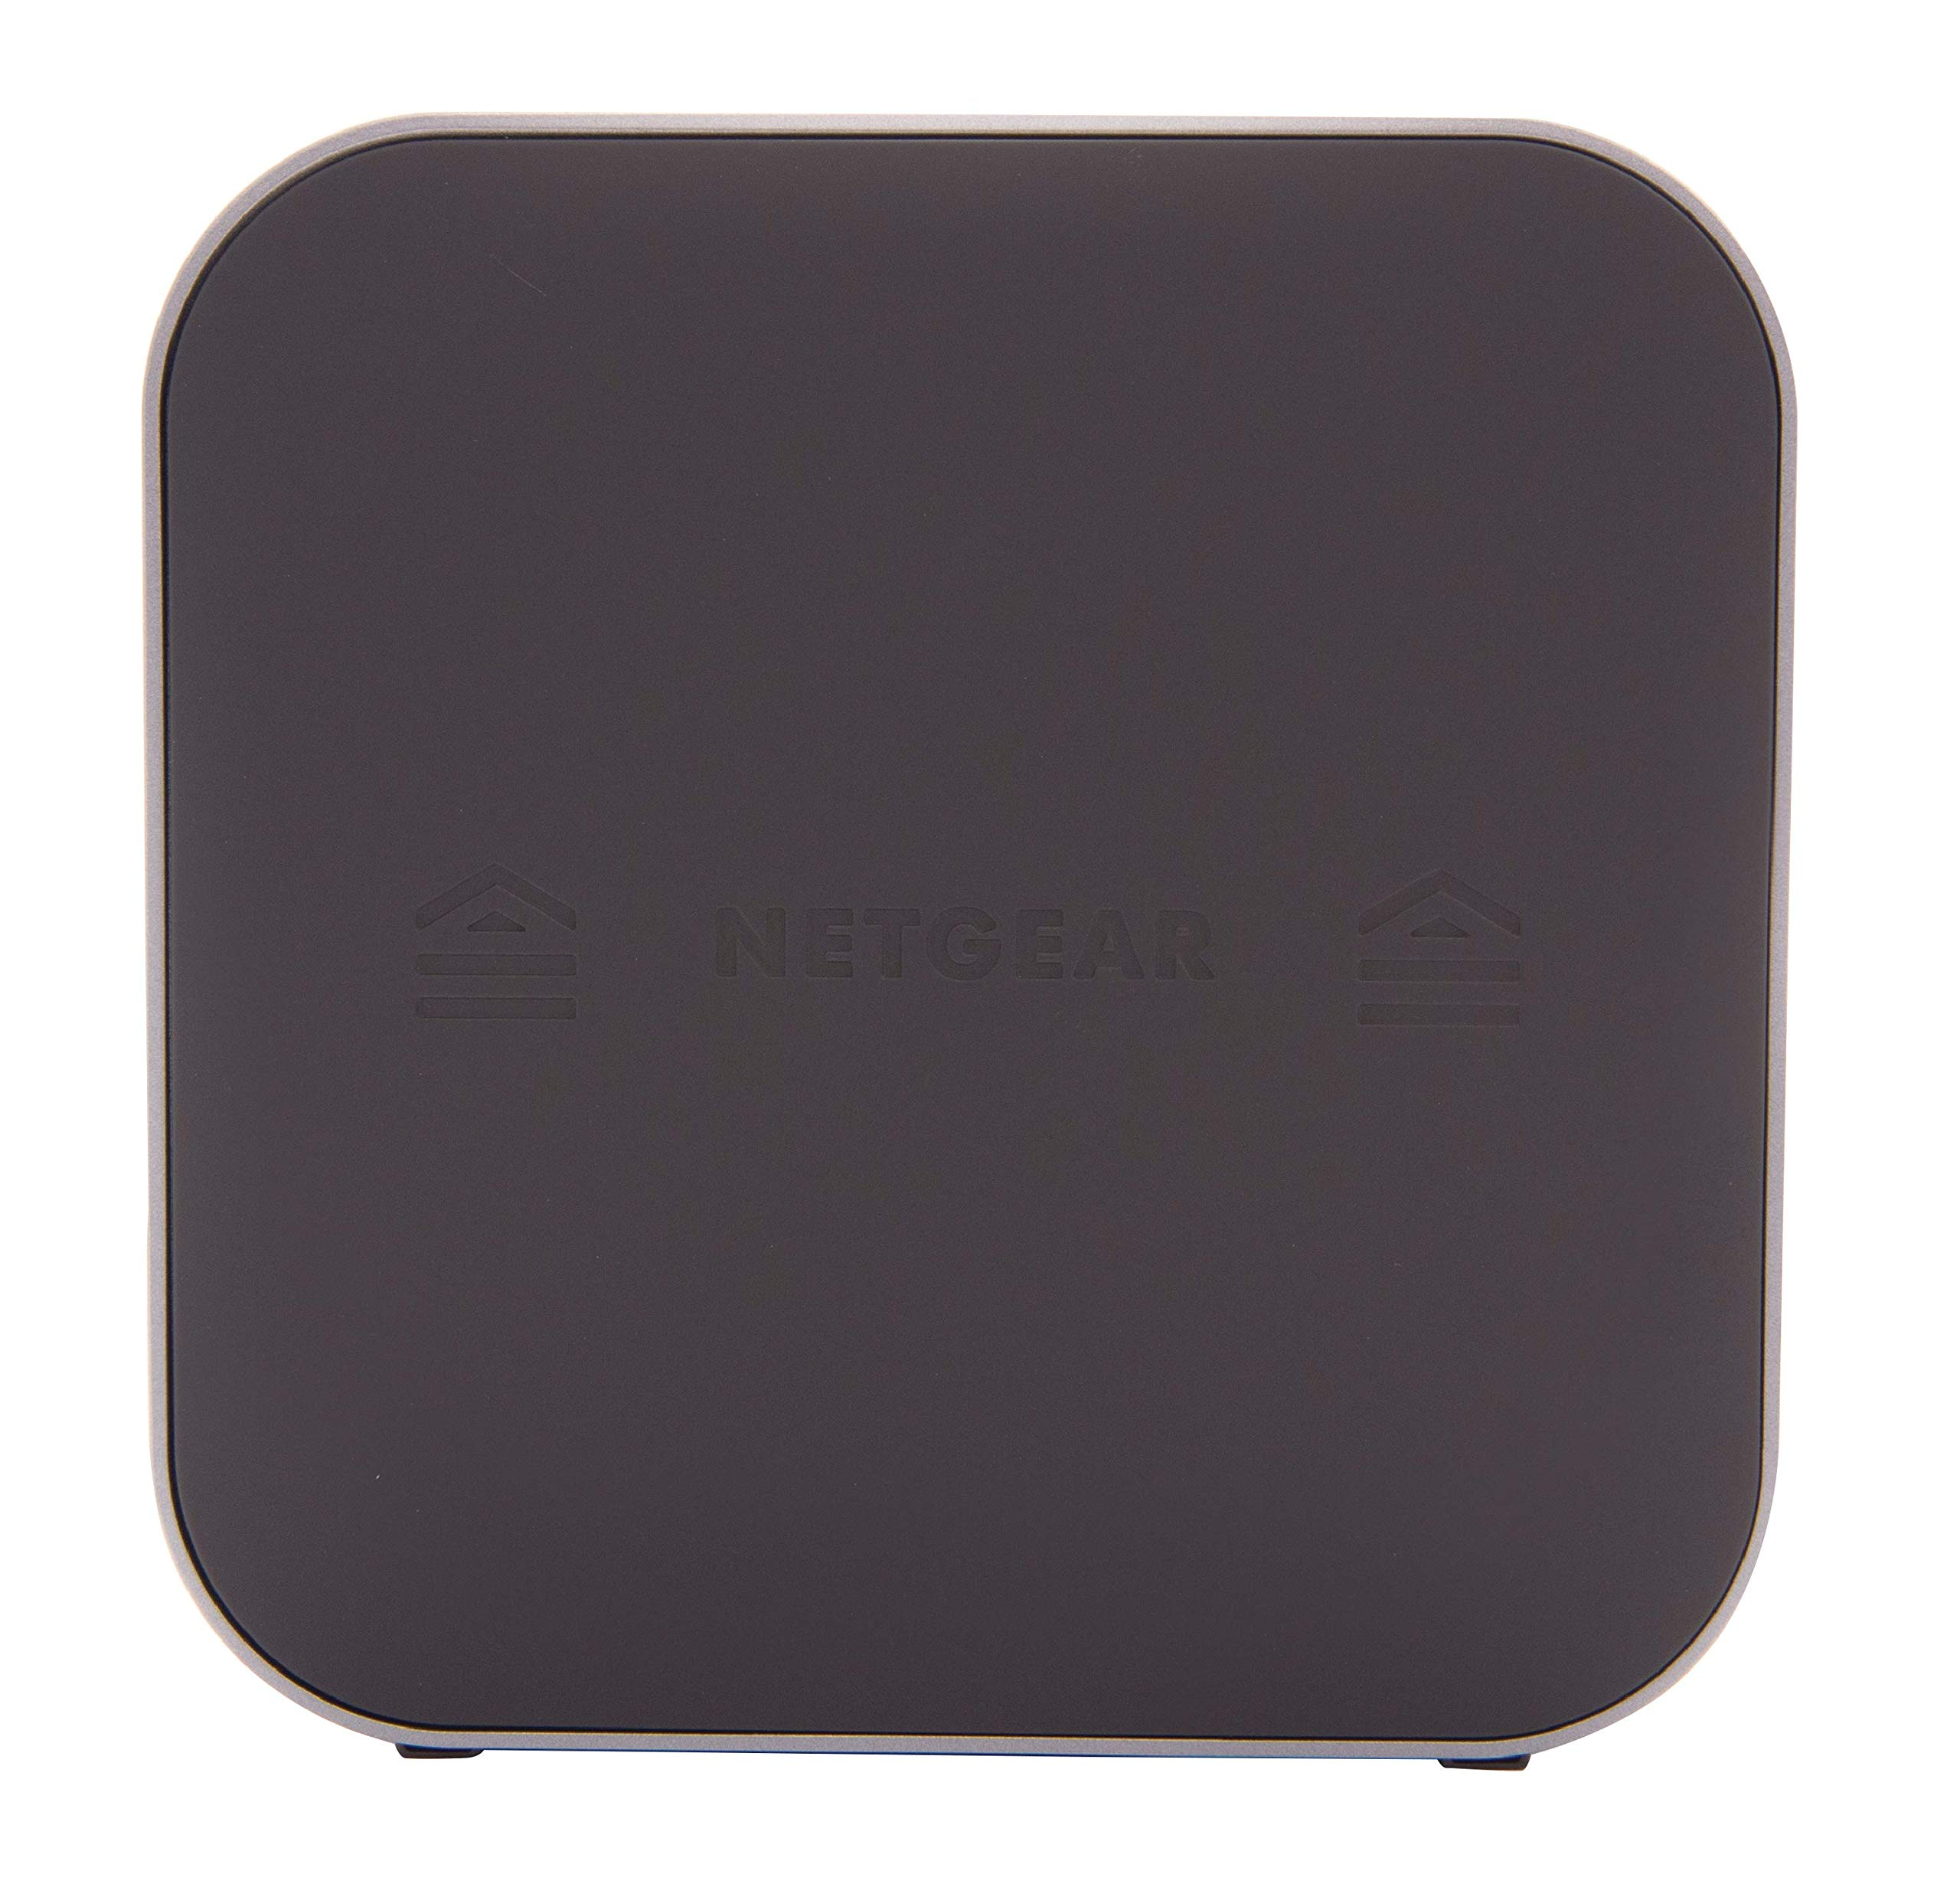 NETGEAR Nighthawk M1 Mobile Hotspot Router (MR1100) by NETGEAR